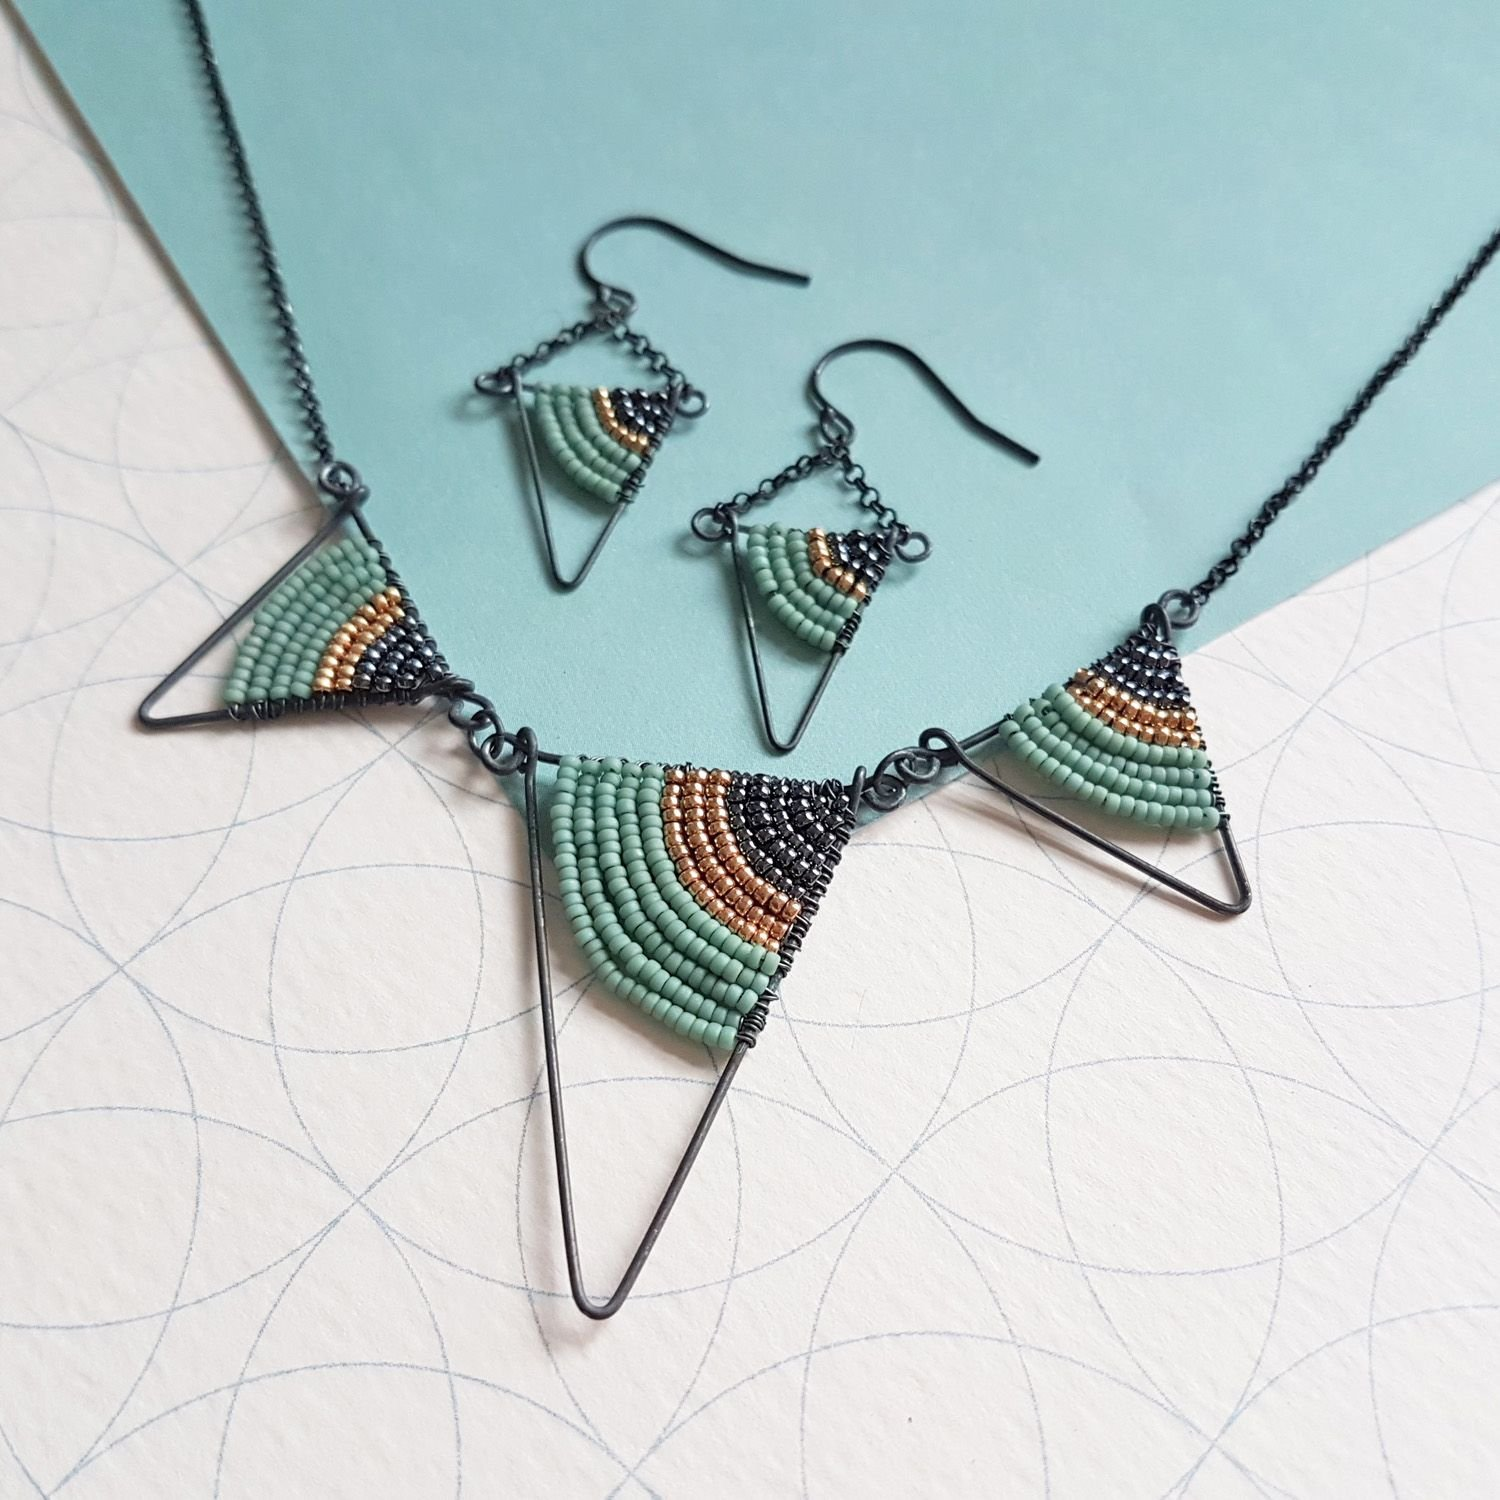 Geometric Necklace and earrings